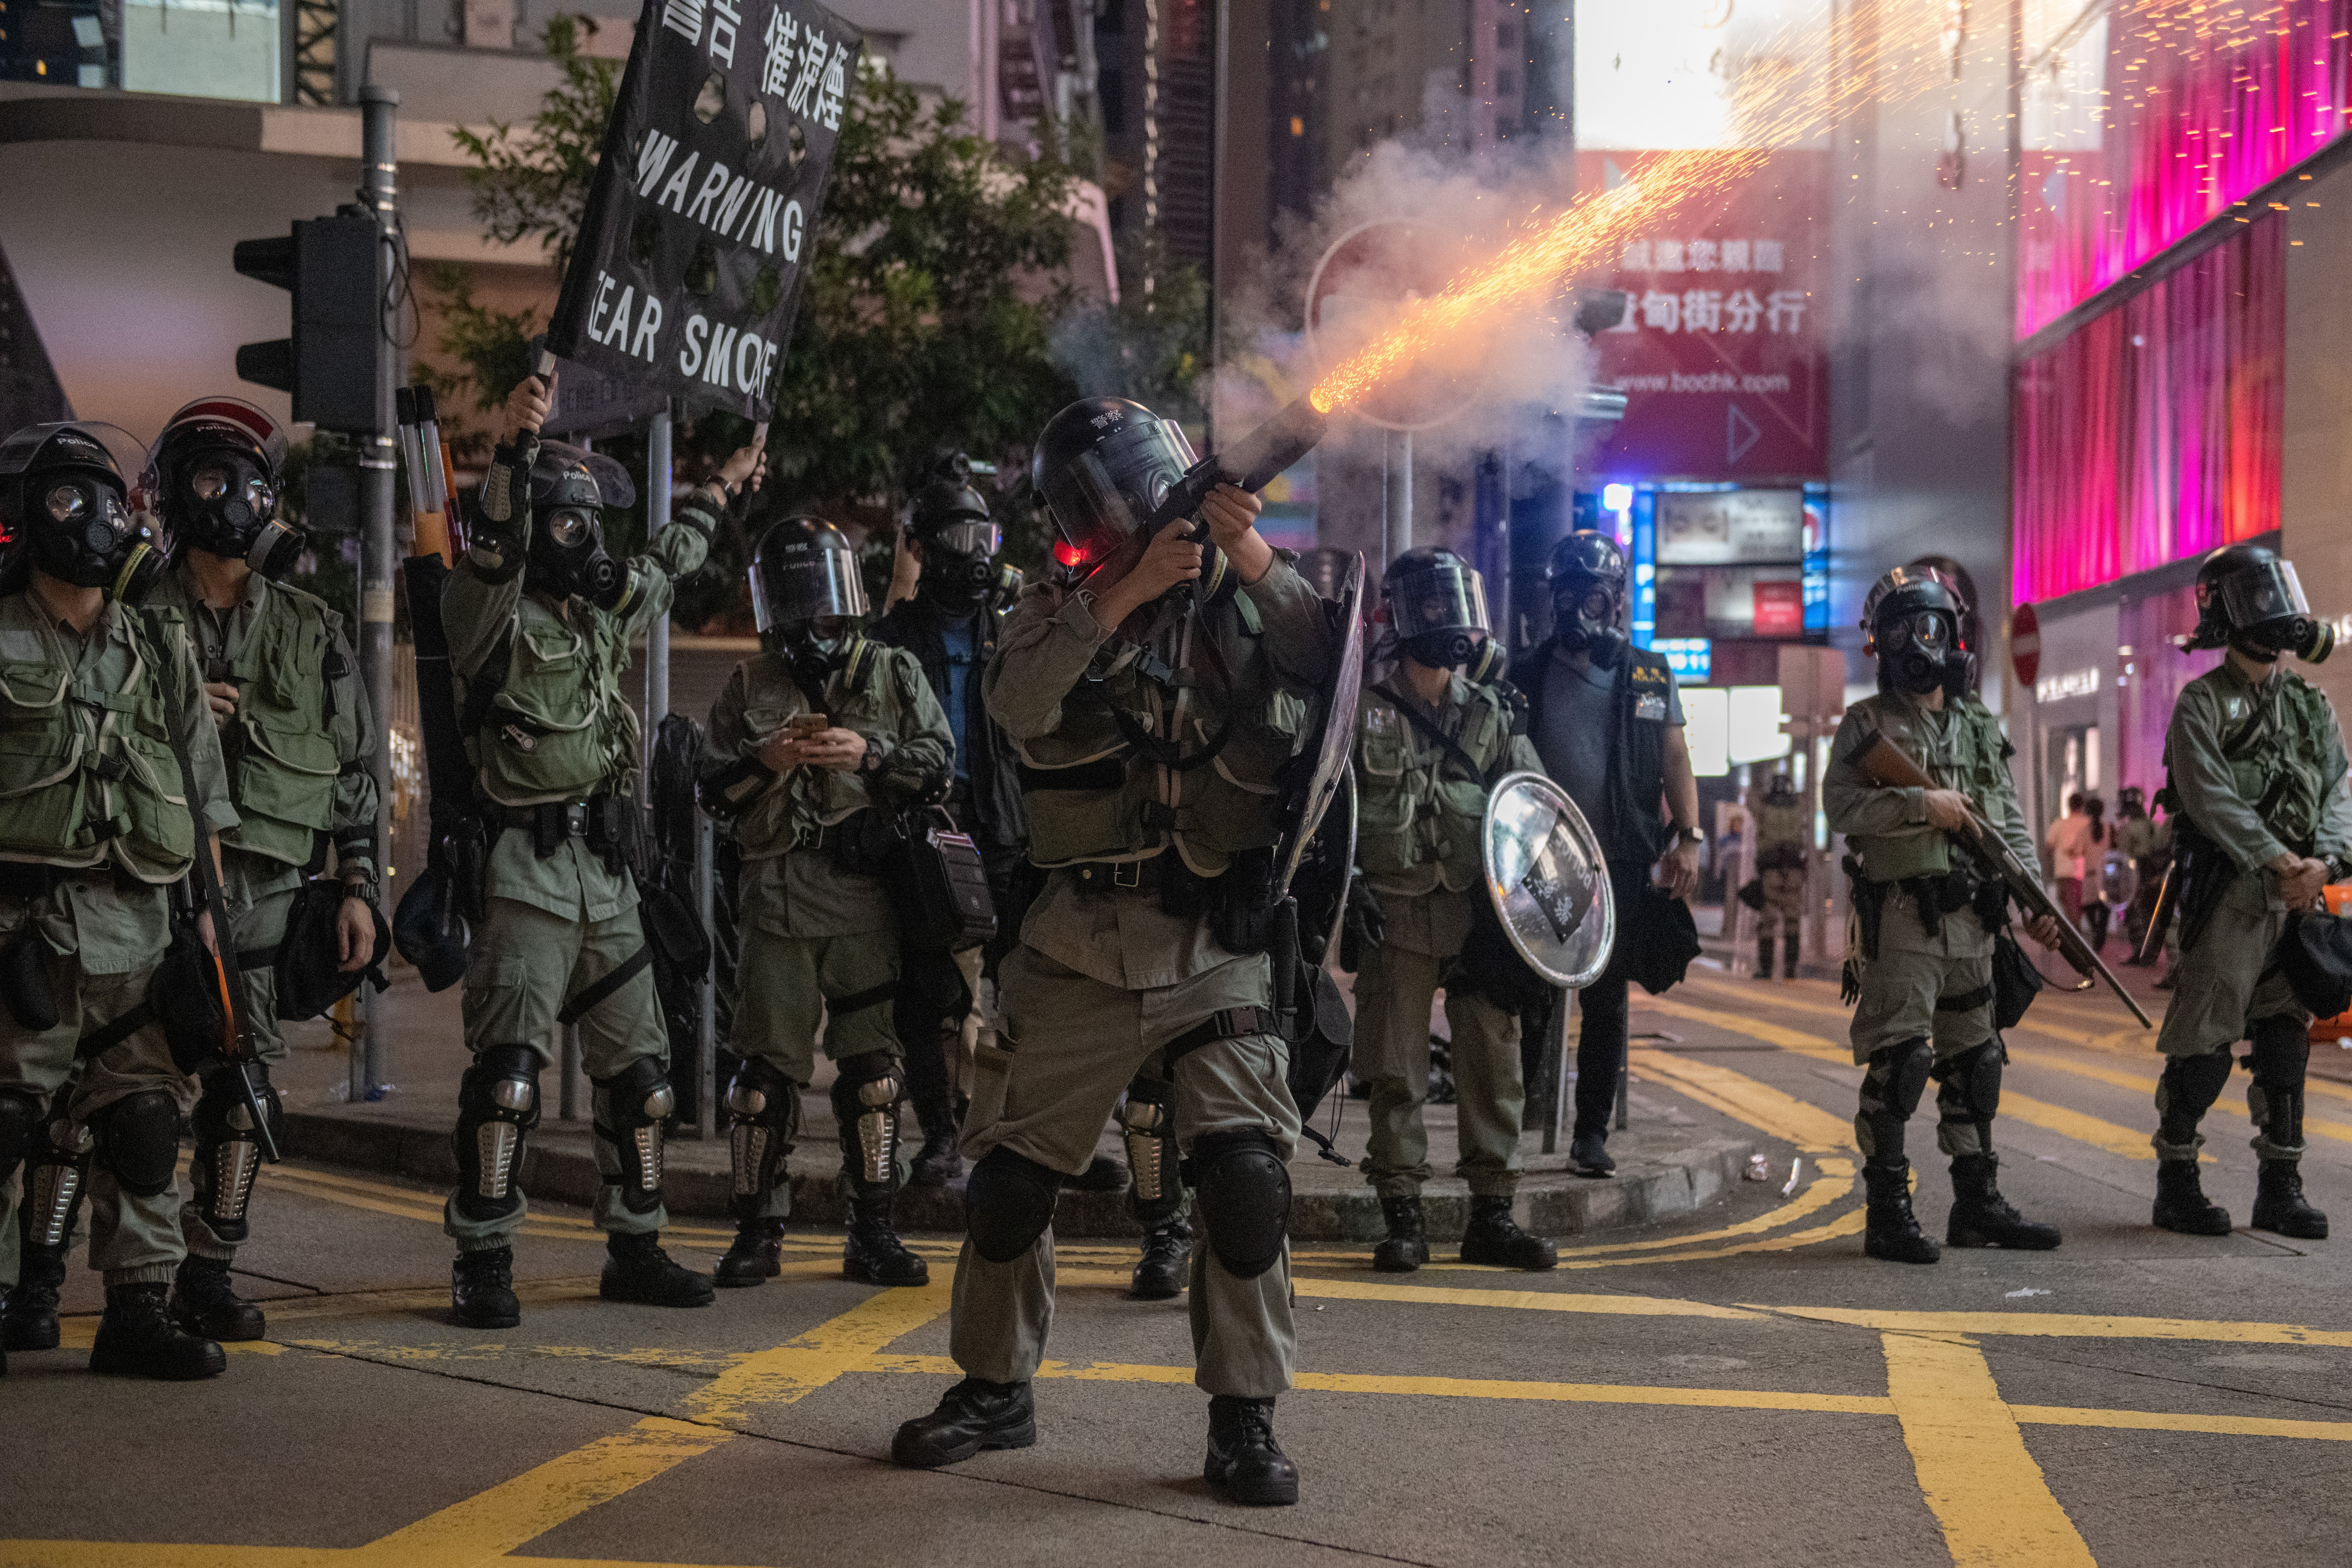 A police officer fires teargas at protesters on September 8, 2019 in Hong Kong, China. Pro-democracy protesters have continued demonstrations across Hong Kong despite the withdrawal of a controversial extradition bill as demonstrators call for the city's Chief Executive Carrie Lam to immediately meet the rest of their demands, including an independent inquiry into police brutality, the retraction of the word 'riot' to describe the rallies, and the right for Hong Kong people to vote for their own leaders. (Photo by Carl Court/Getty Images)